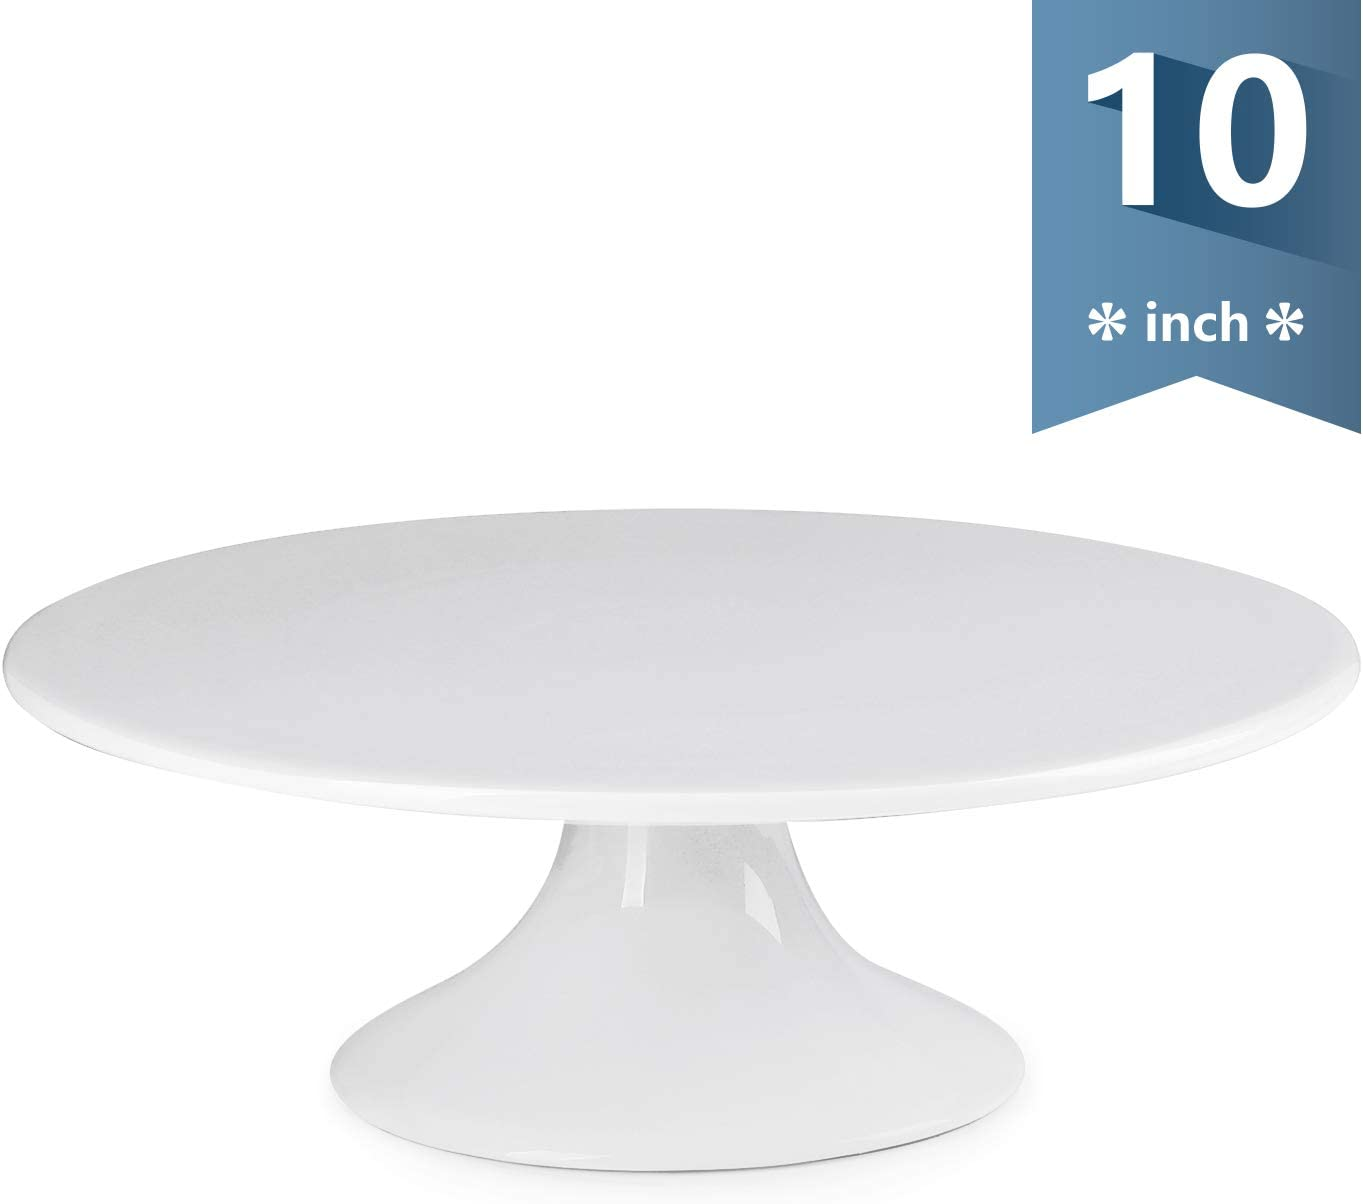 Sweese 708.101 10-Inch Porcelain Cake Stand, Round Dessert Stand, White Cupcake Stand for Parties